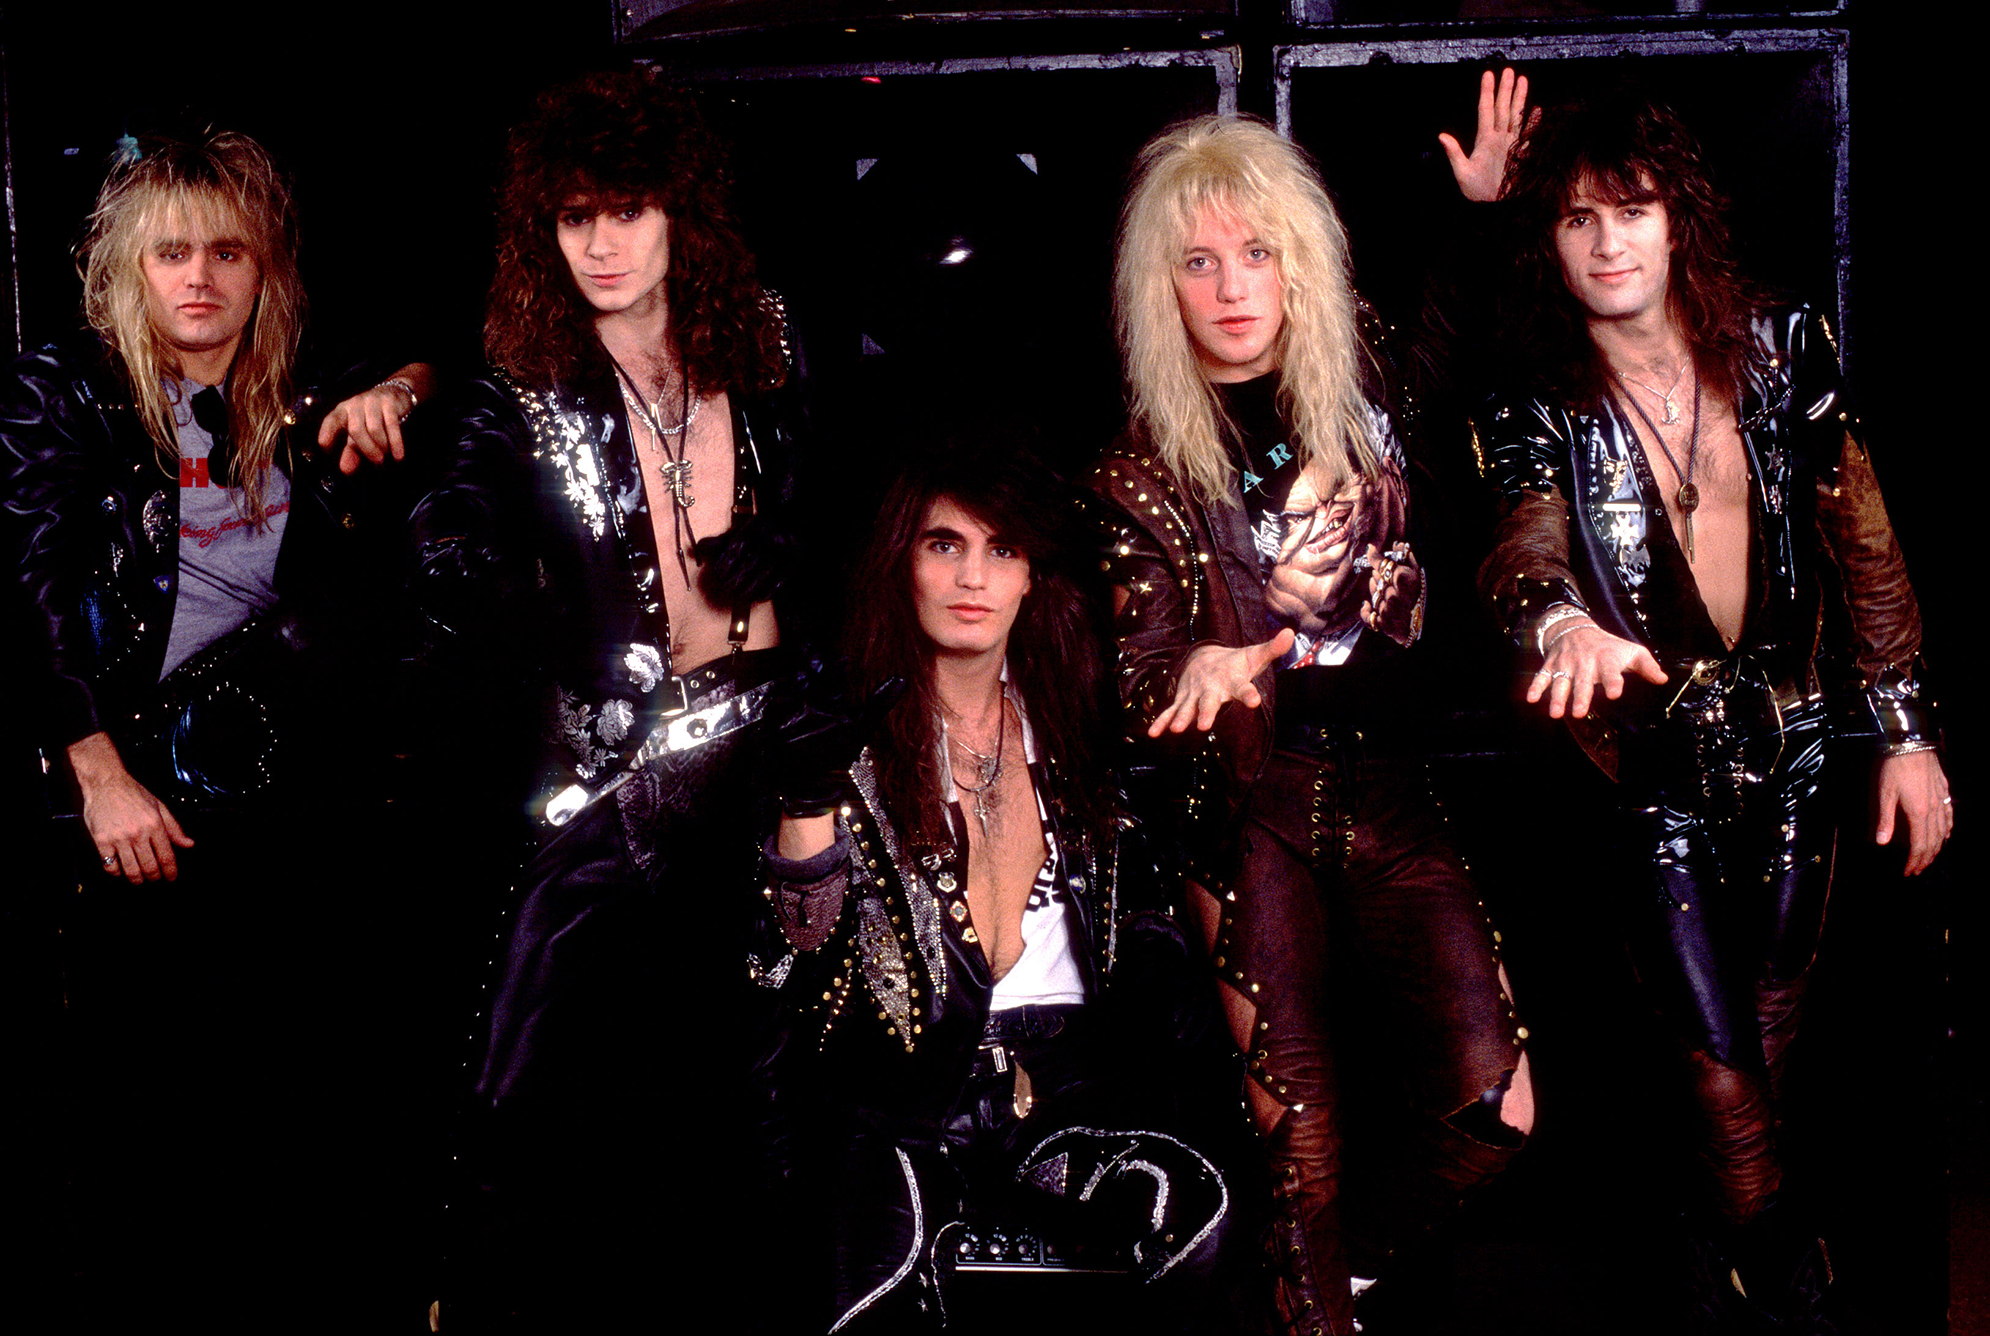 Warrant on 11/5/89 in Chicago, Il. in Various Locations, (Photo by Paul Natkin/WireImage)